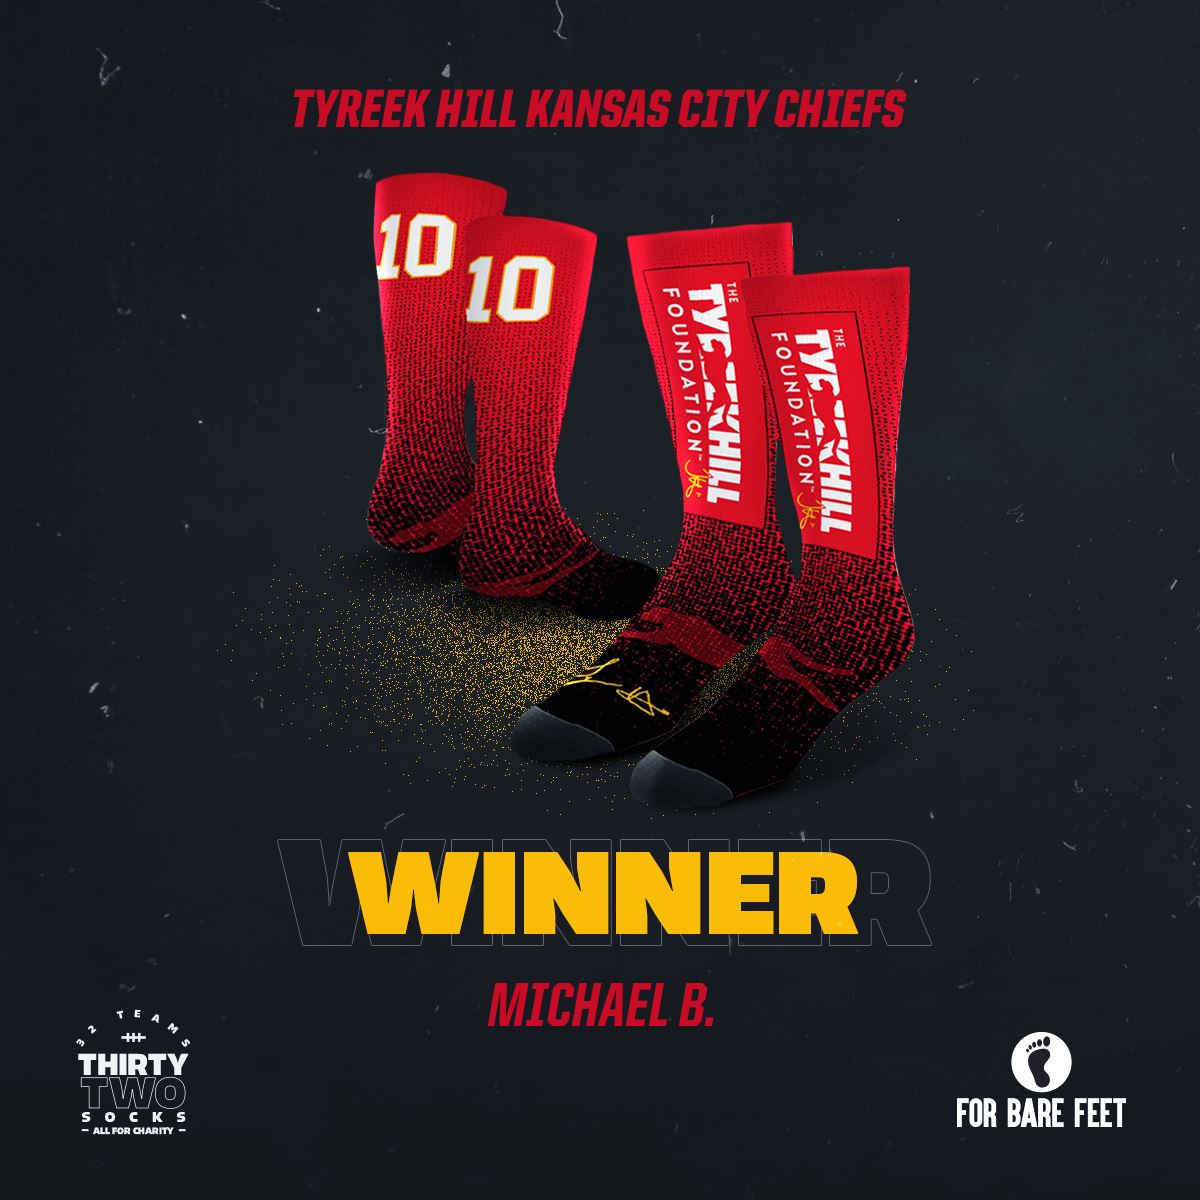 Thank you @ForBareFeet and everyone that helped support The Tyreek Hill Foundation through the #32Teams32Socks Charity Auction! A special congrats to auction winner Michael B.